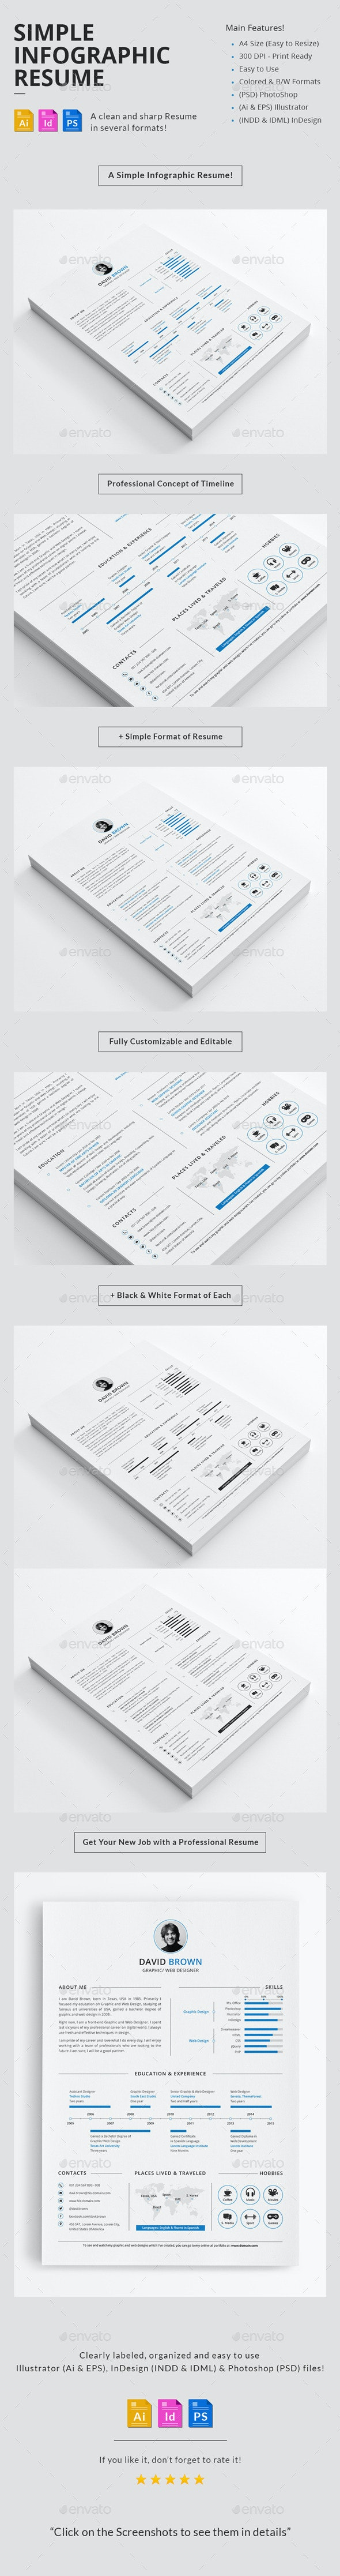 Simple Infographic Resume - Resumes Stationery